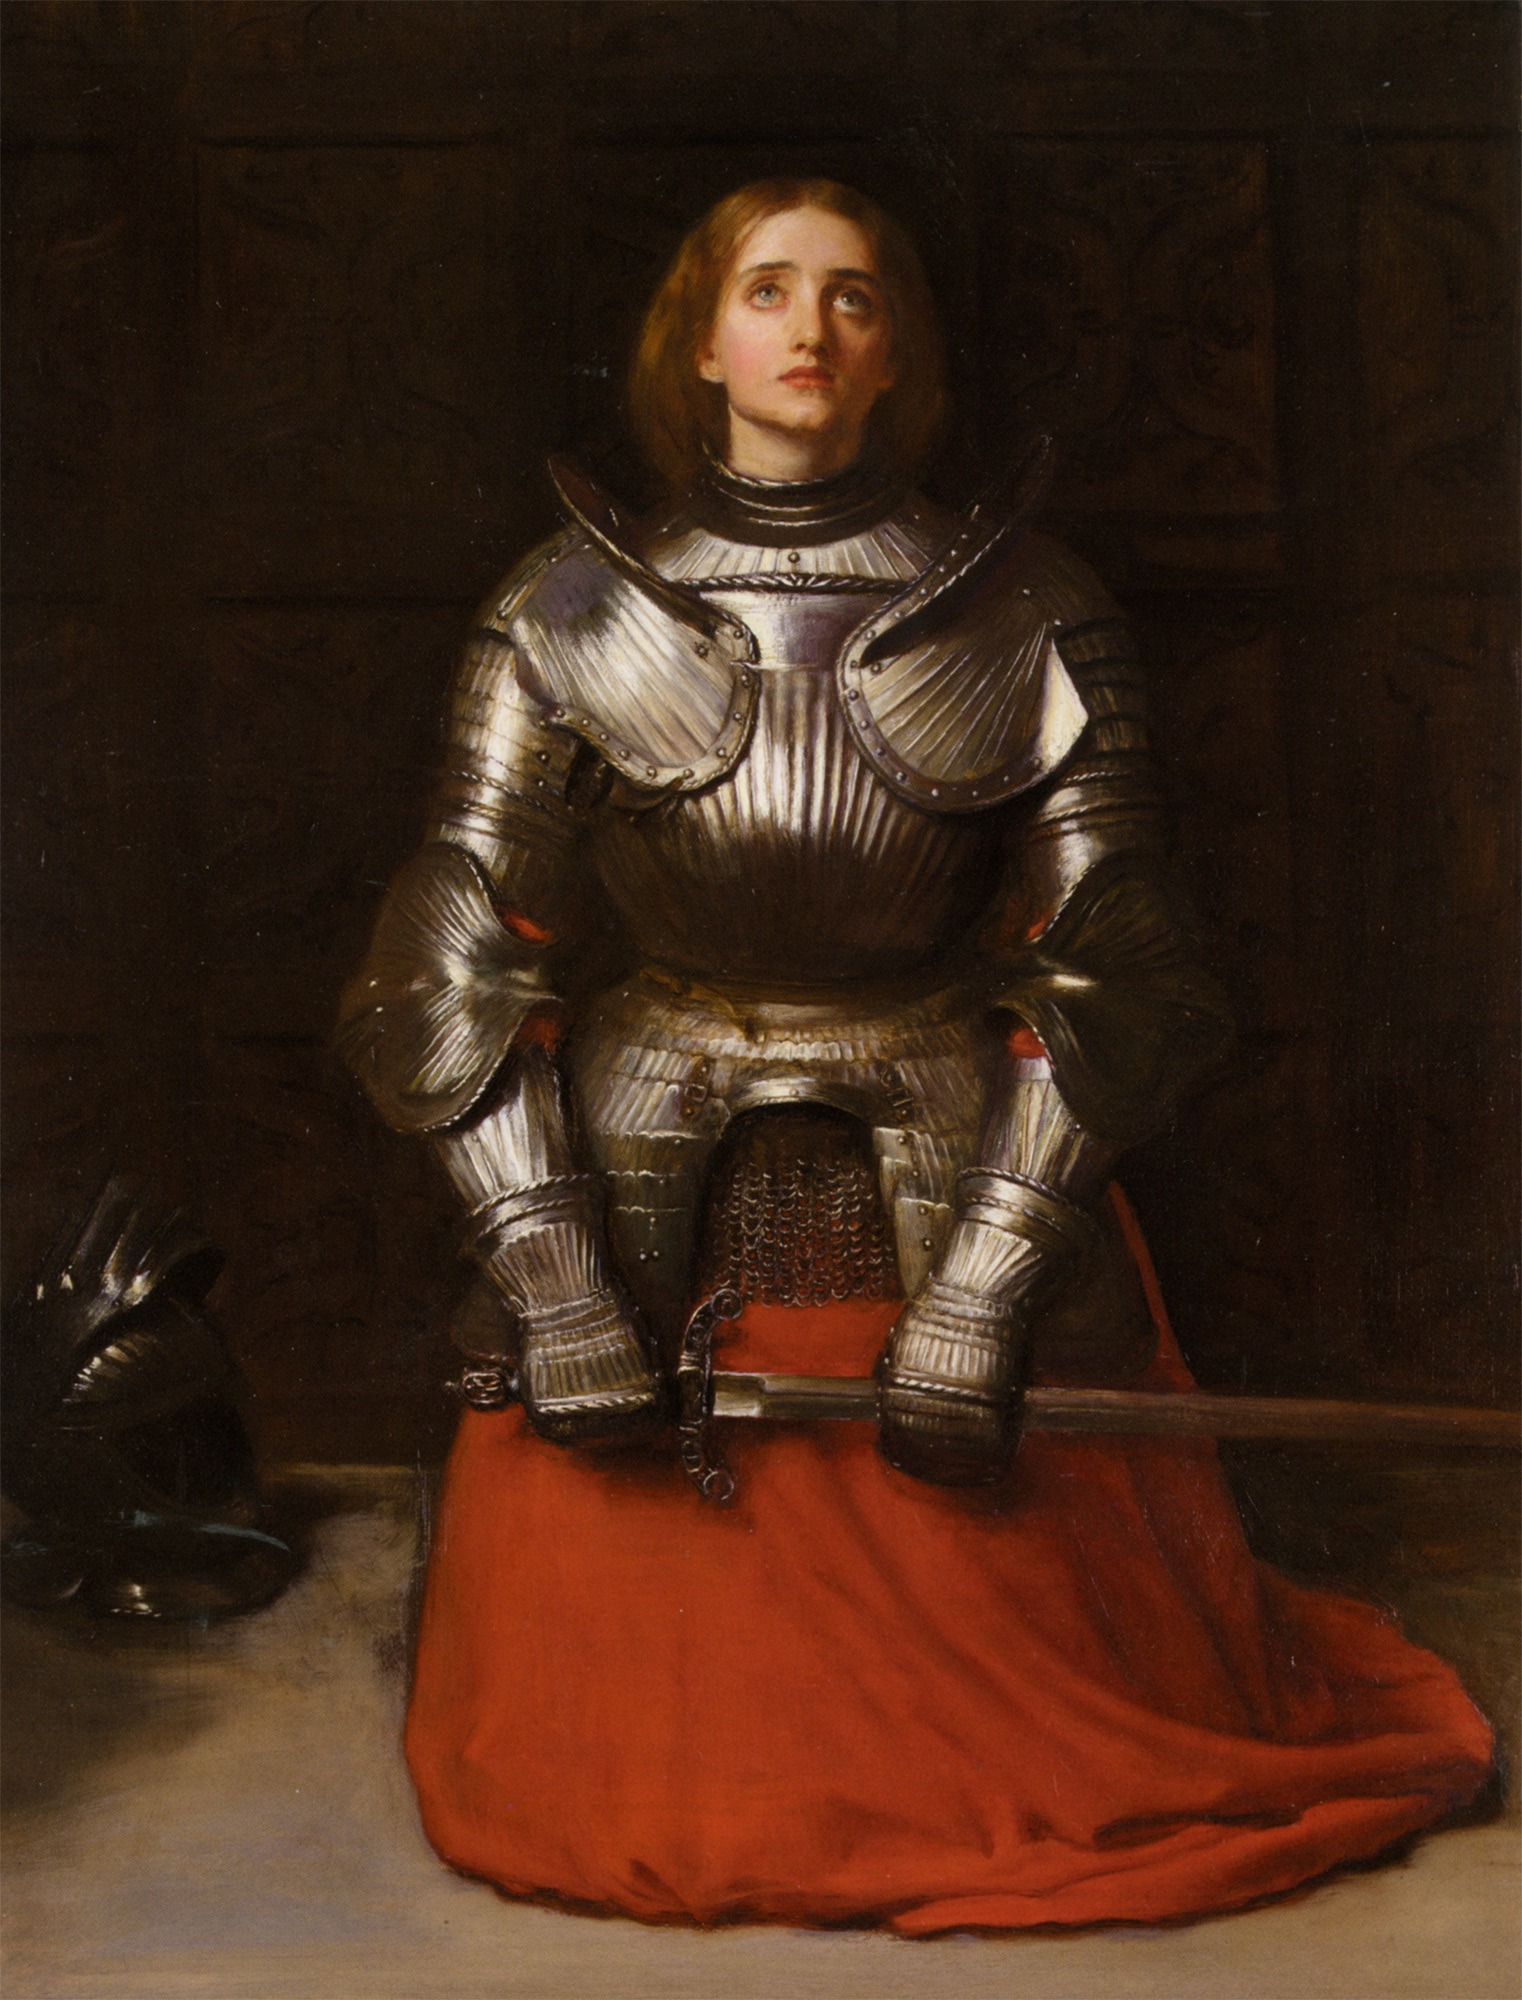 a biography of saint joan of arc the maid of france Saint joan of arcchuch hall of fame nominee biographyjoan of arc was born into a peasant family in 1412 her persistence in following god's will, led her to join the royal force of france.